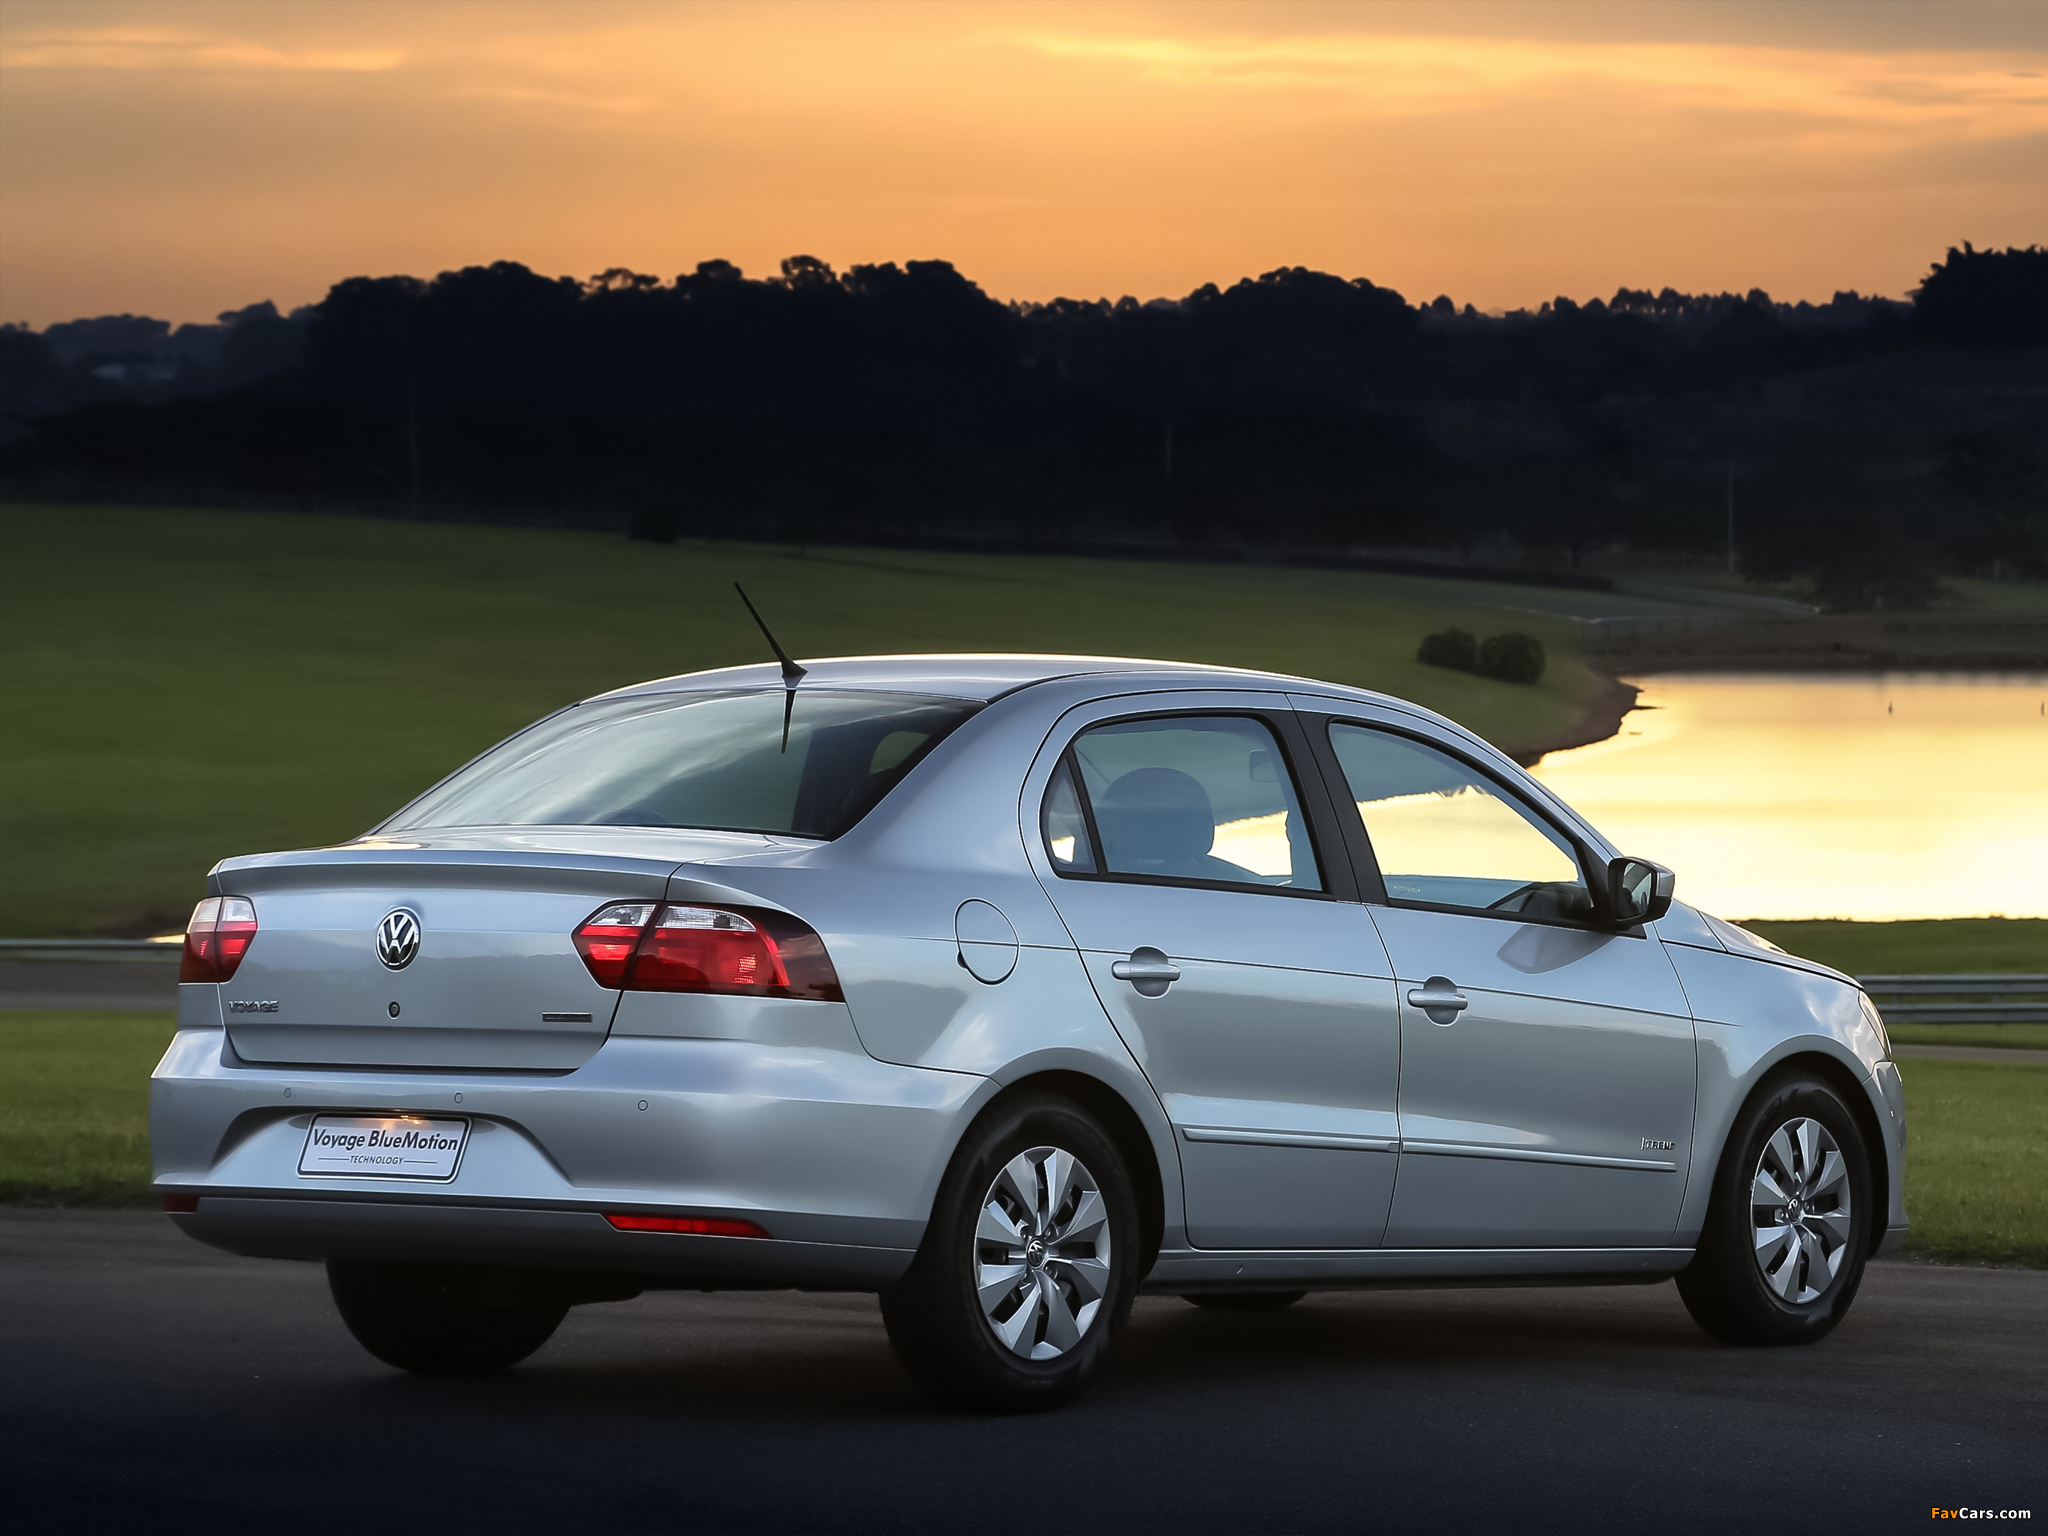 Images of Volkswagen Voyage Bluemotion 2012 (2048 x 1536)